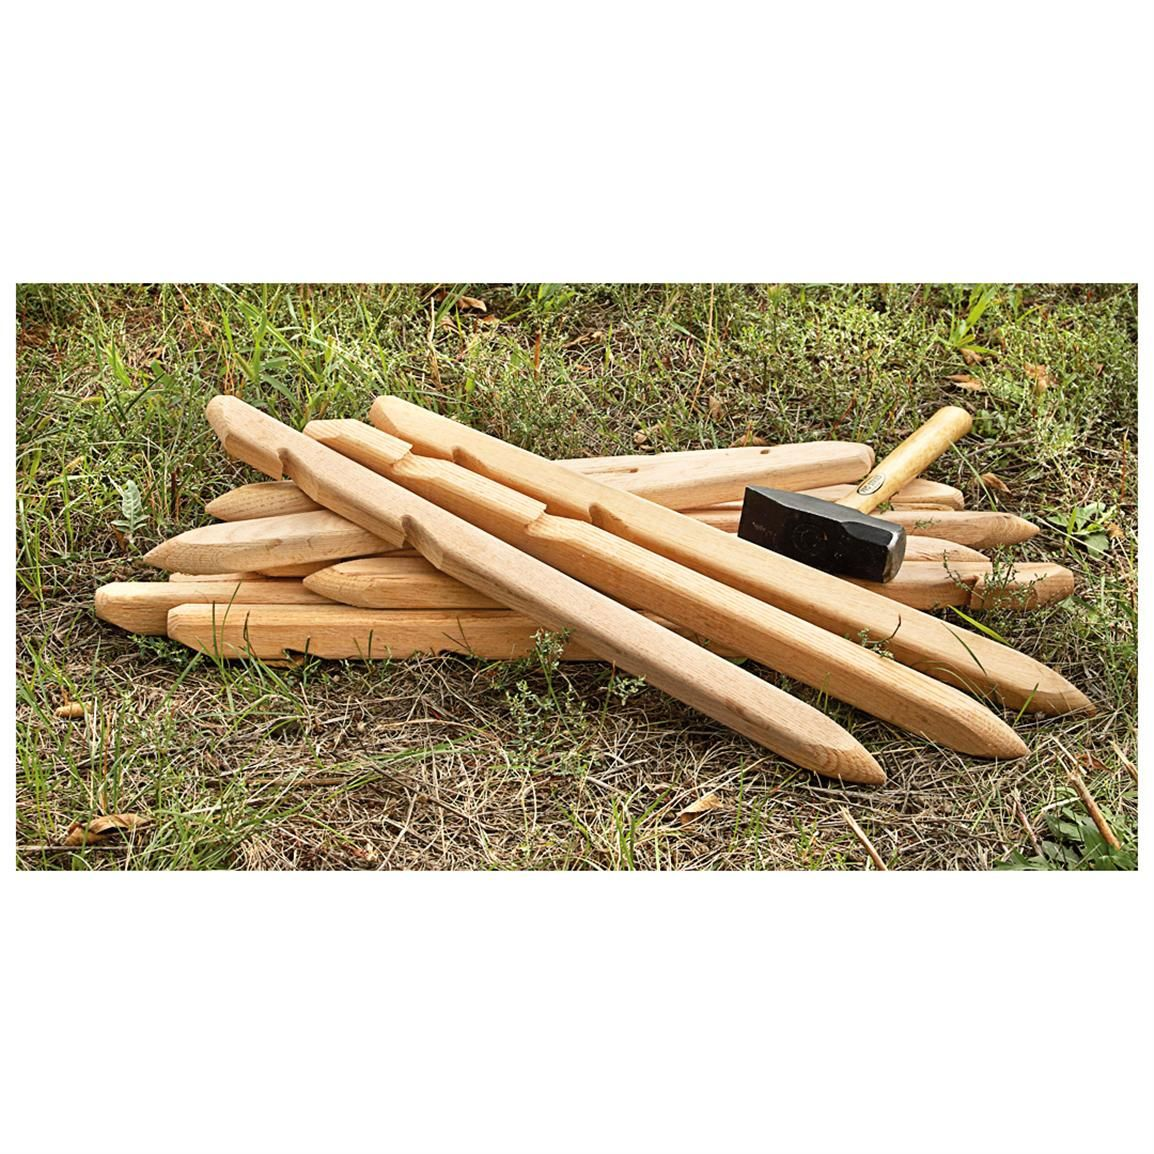 Image result for hardwood tent stakes  sc 1 st  Pinterest & Image result for hardwood tent stakes | OA | Pinterest | Tent ...